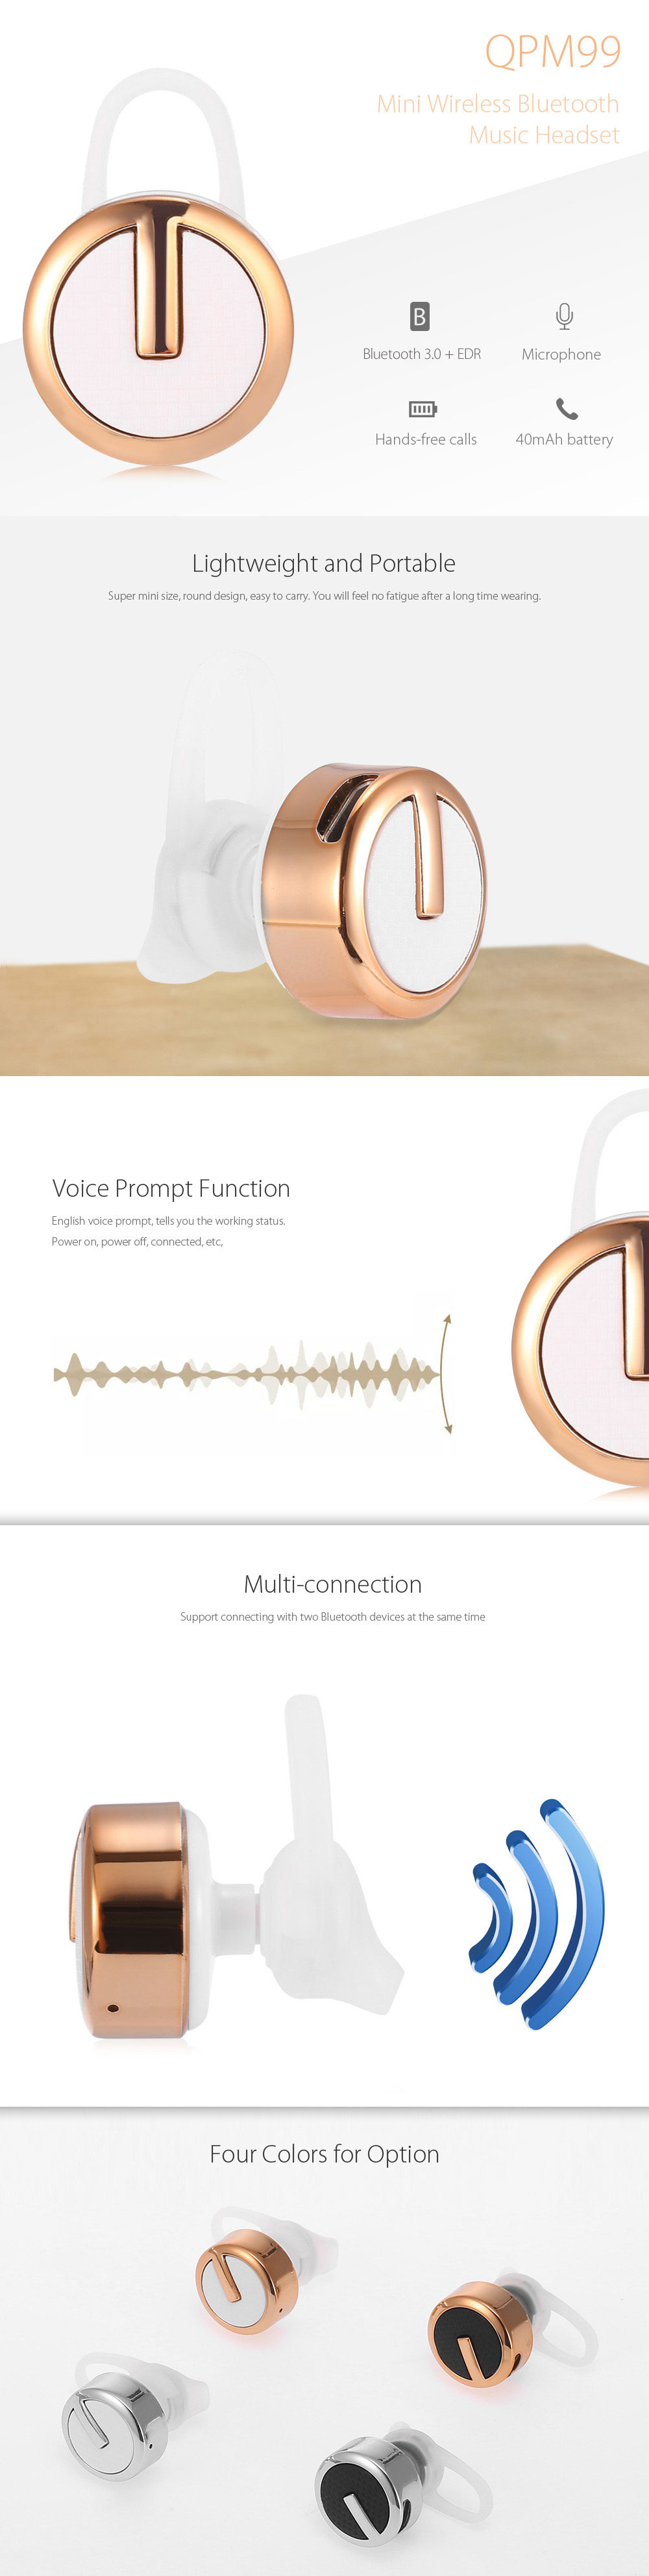 QPM99 Wireless Bluetooth Music Headset Hands-free Calls Voice Prompt Battery Status Display